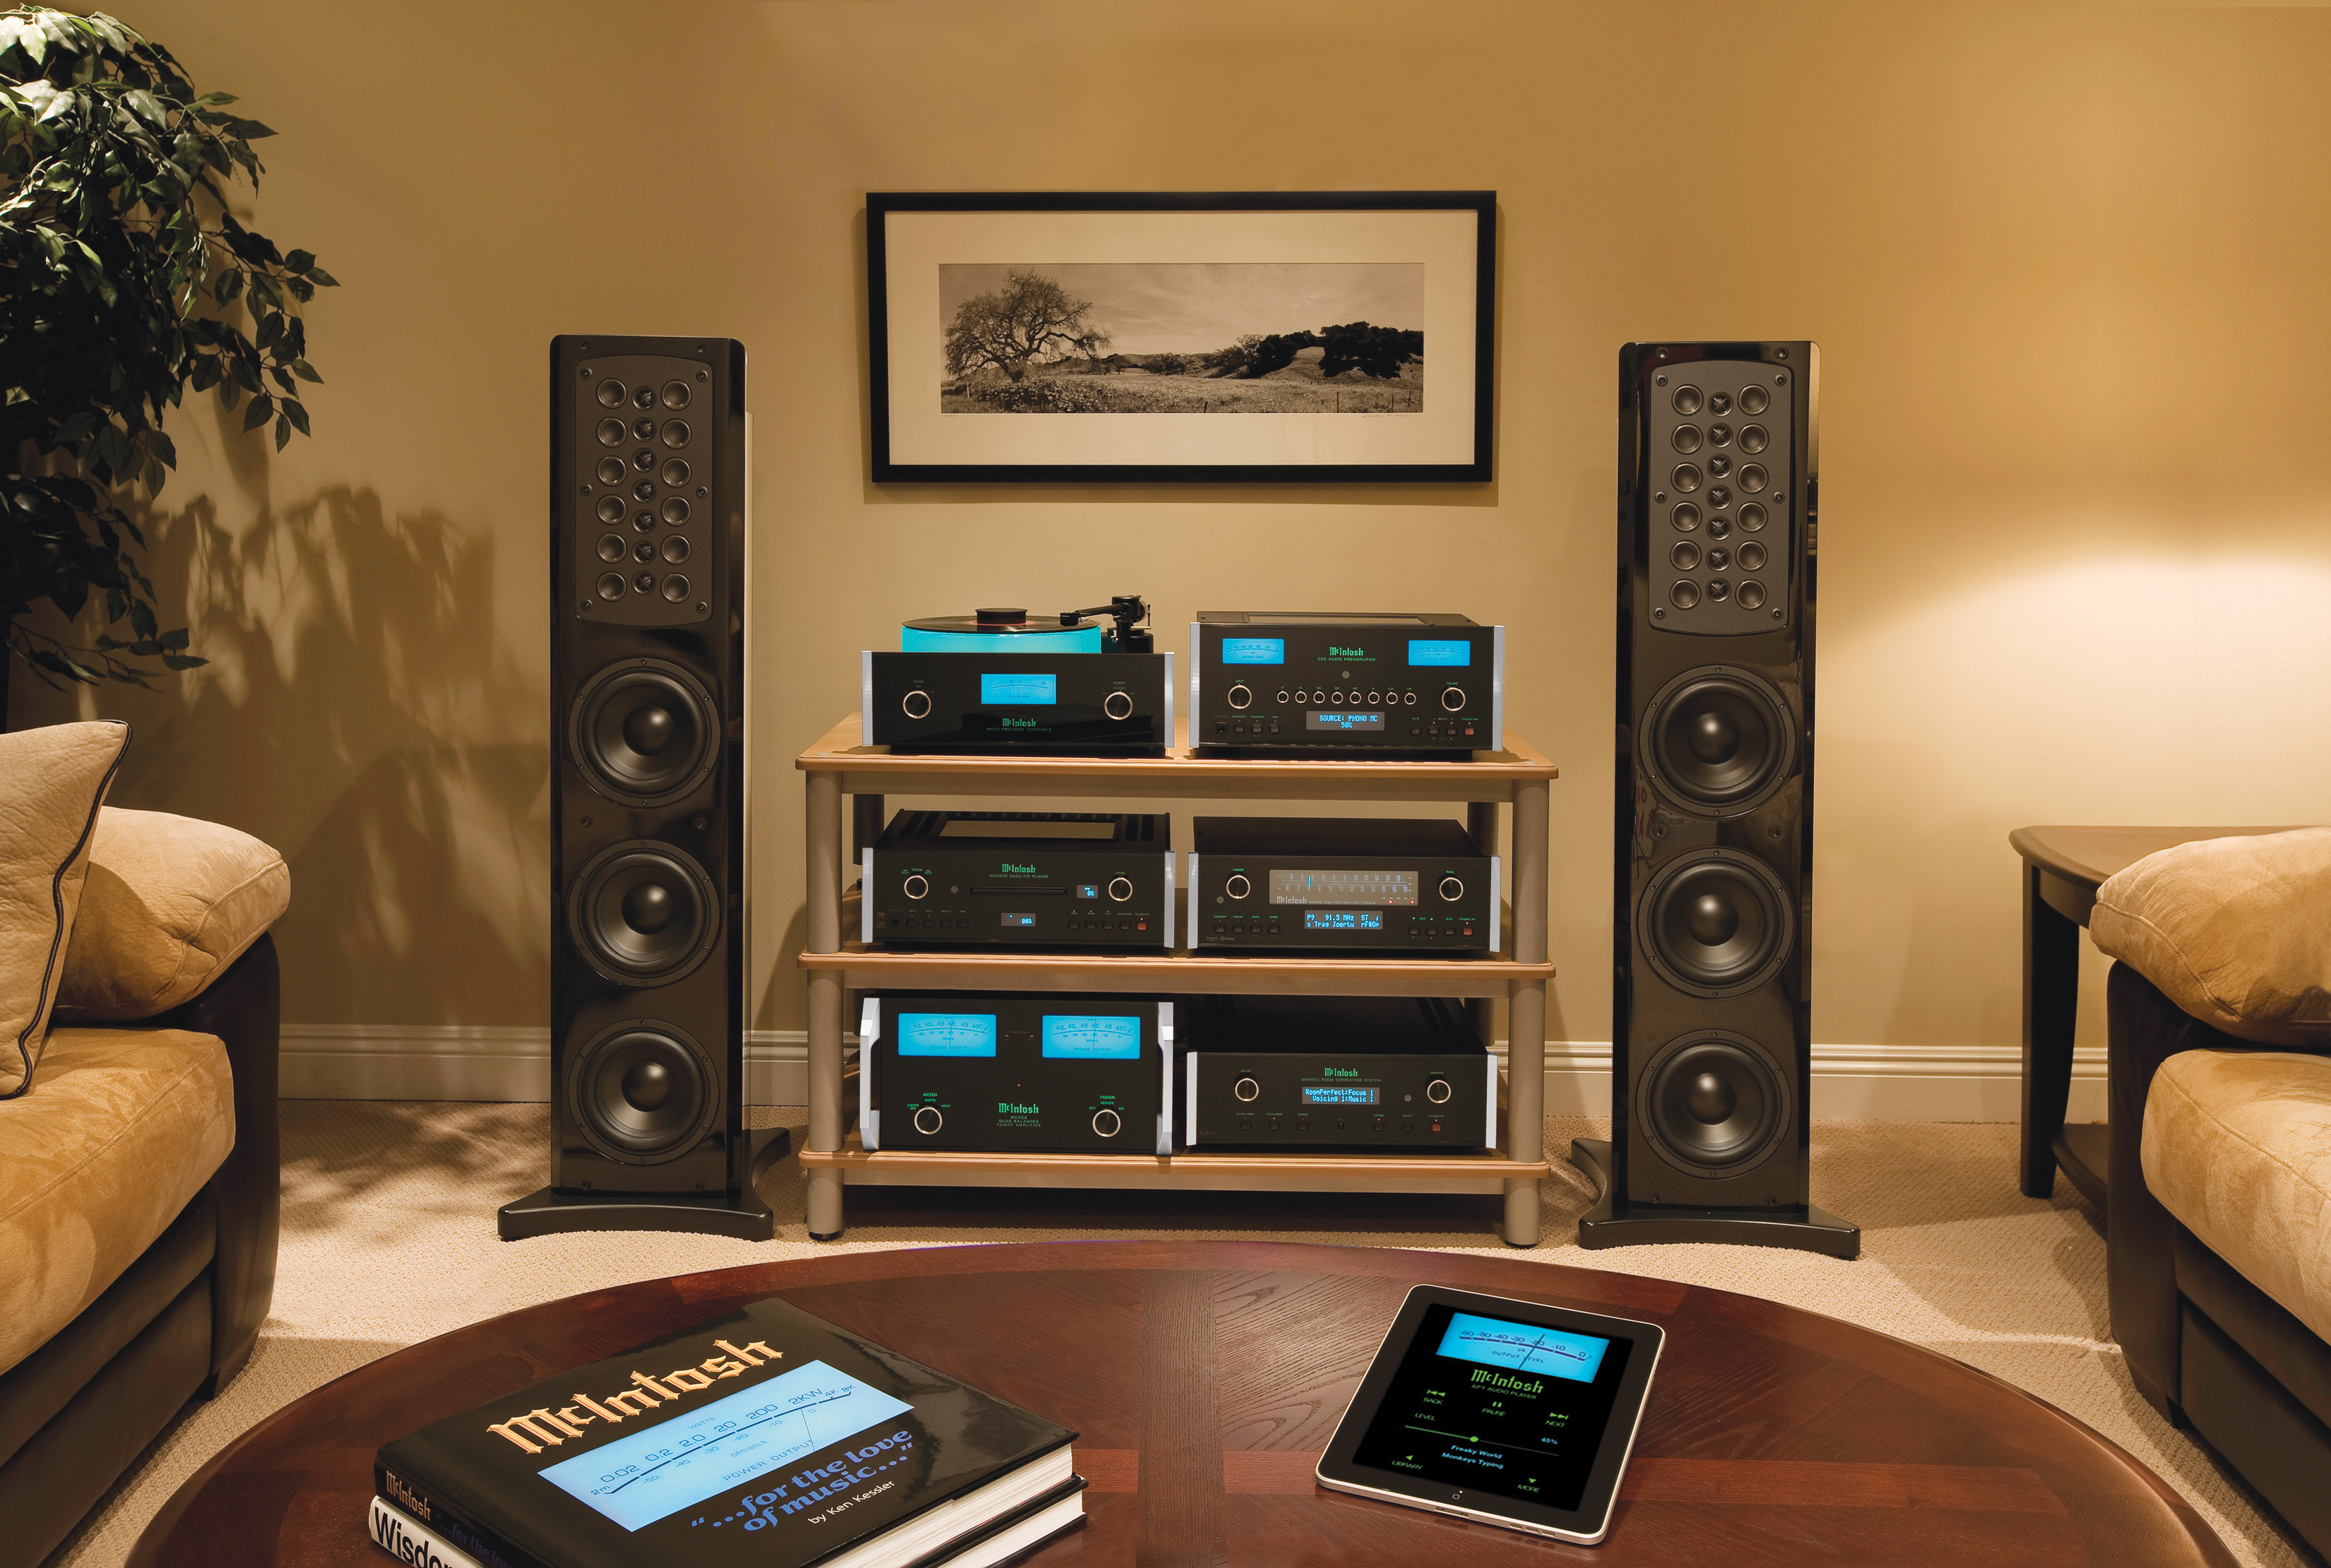 McIntosh Audio Delivers High-Performance Sound for Your Whole California Home